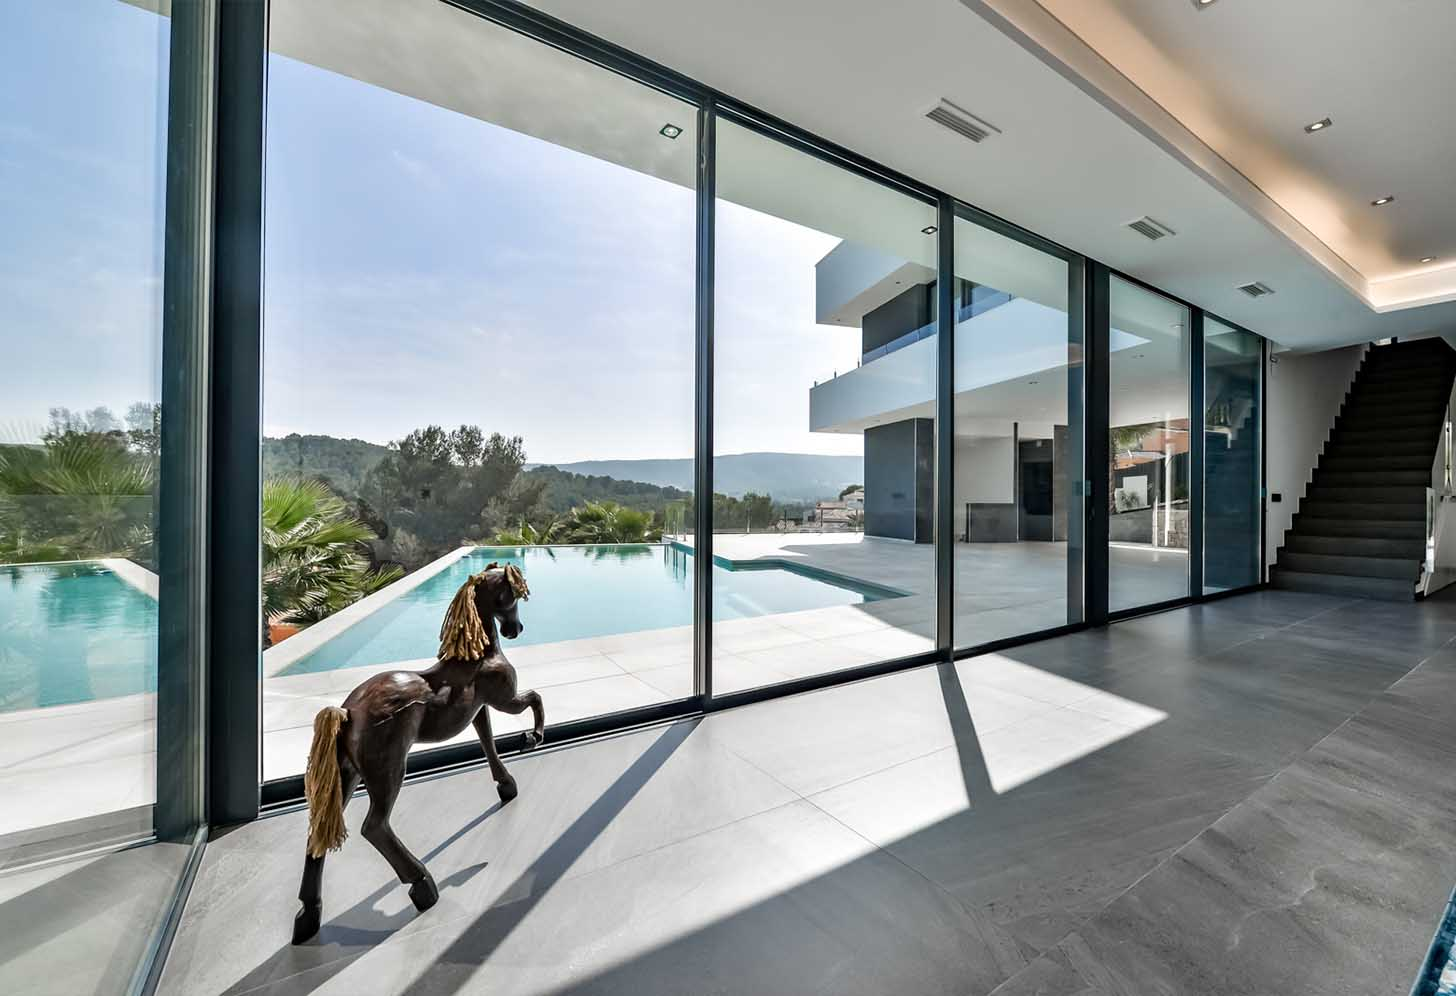 immobilier neuf espagne costa blanca nord on-i1 vue salon